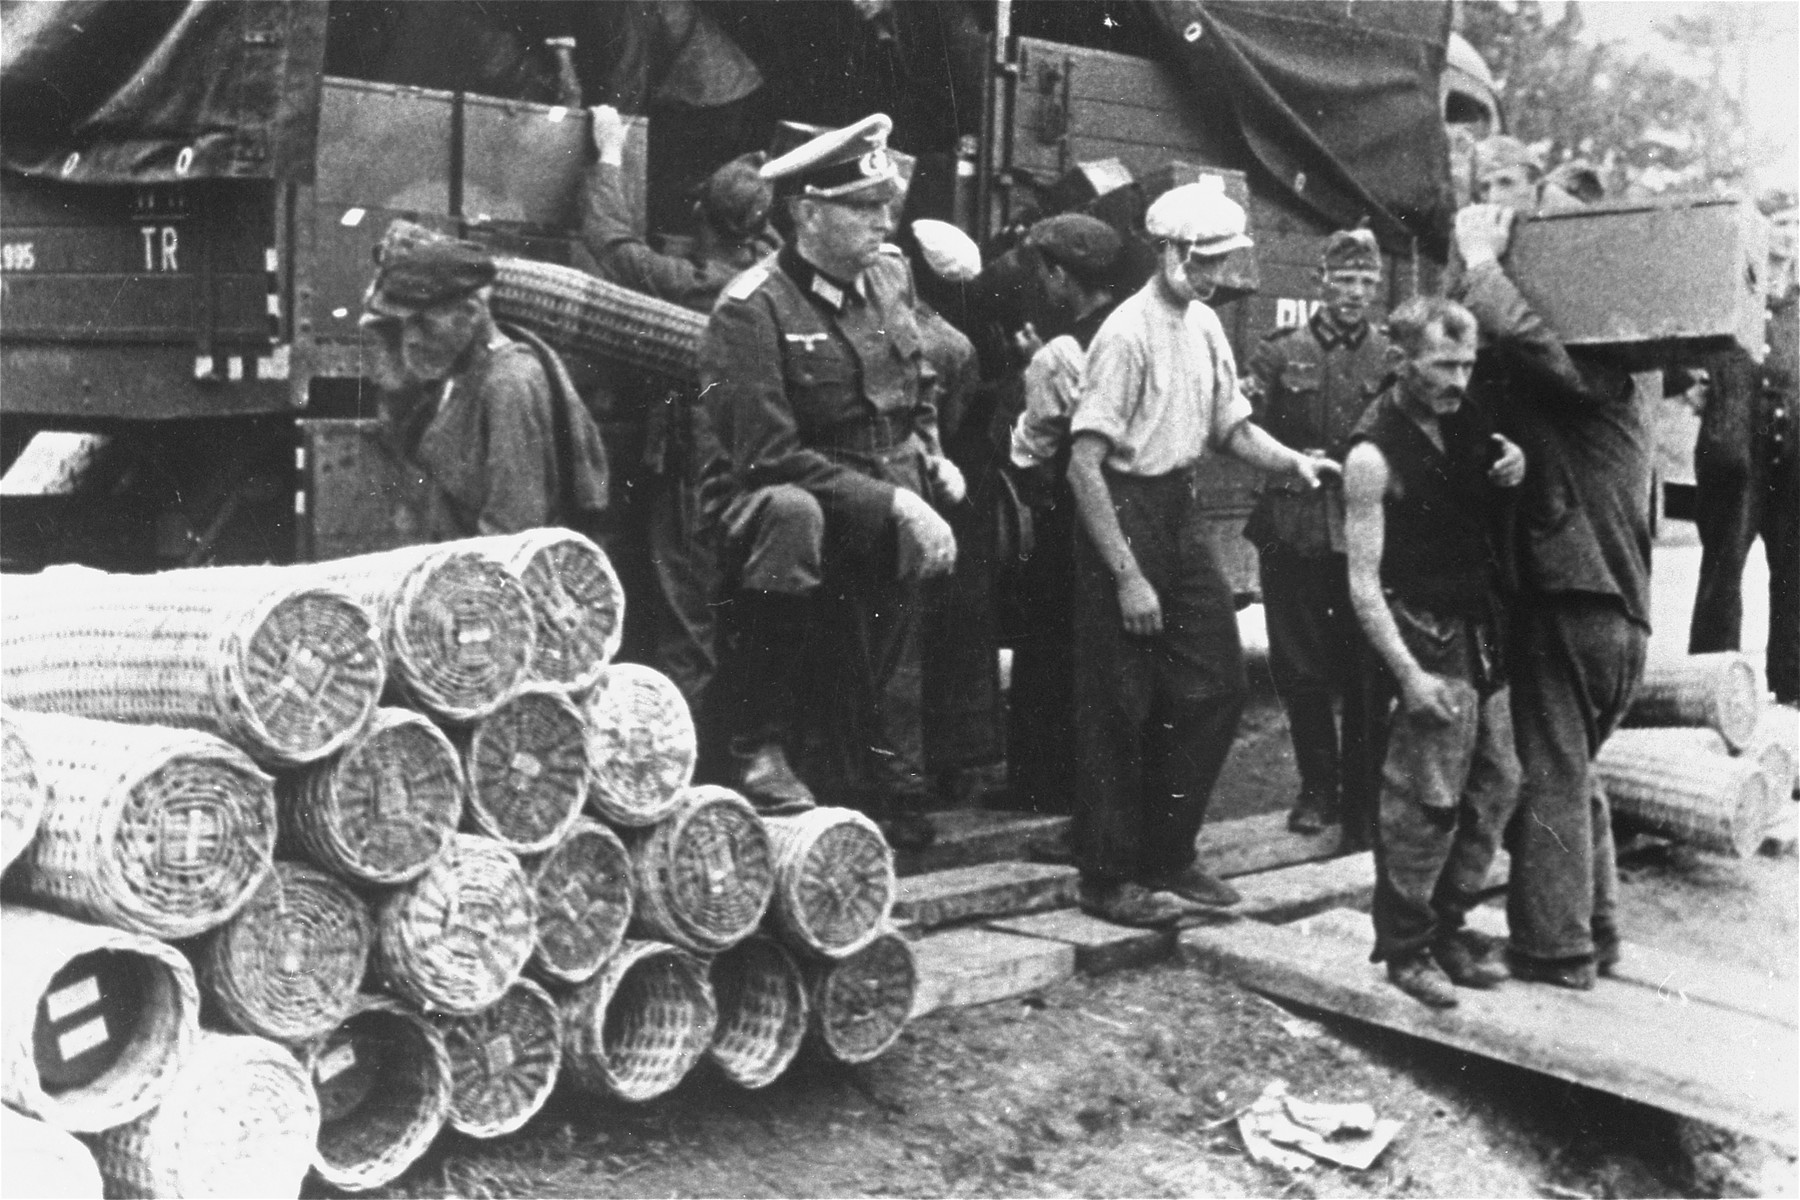 Jewish men are forced to load a munitions train under German supervision.    At the left, a German officer leans on a pile of artillery shells encased in protective woven baskets. [regular and oversized photo]